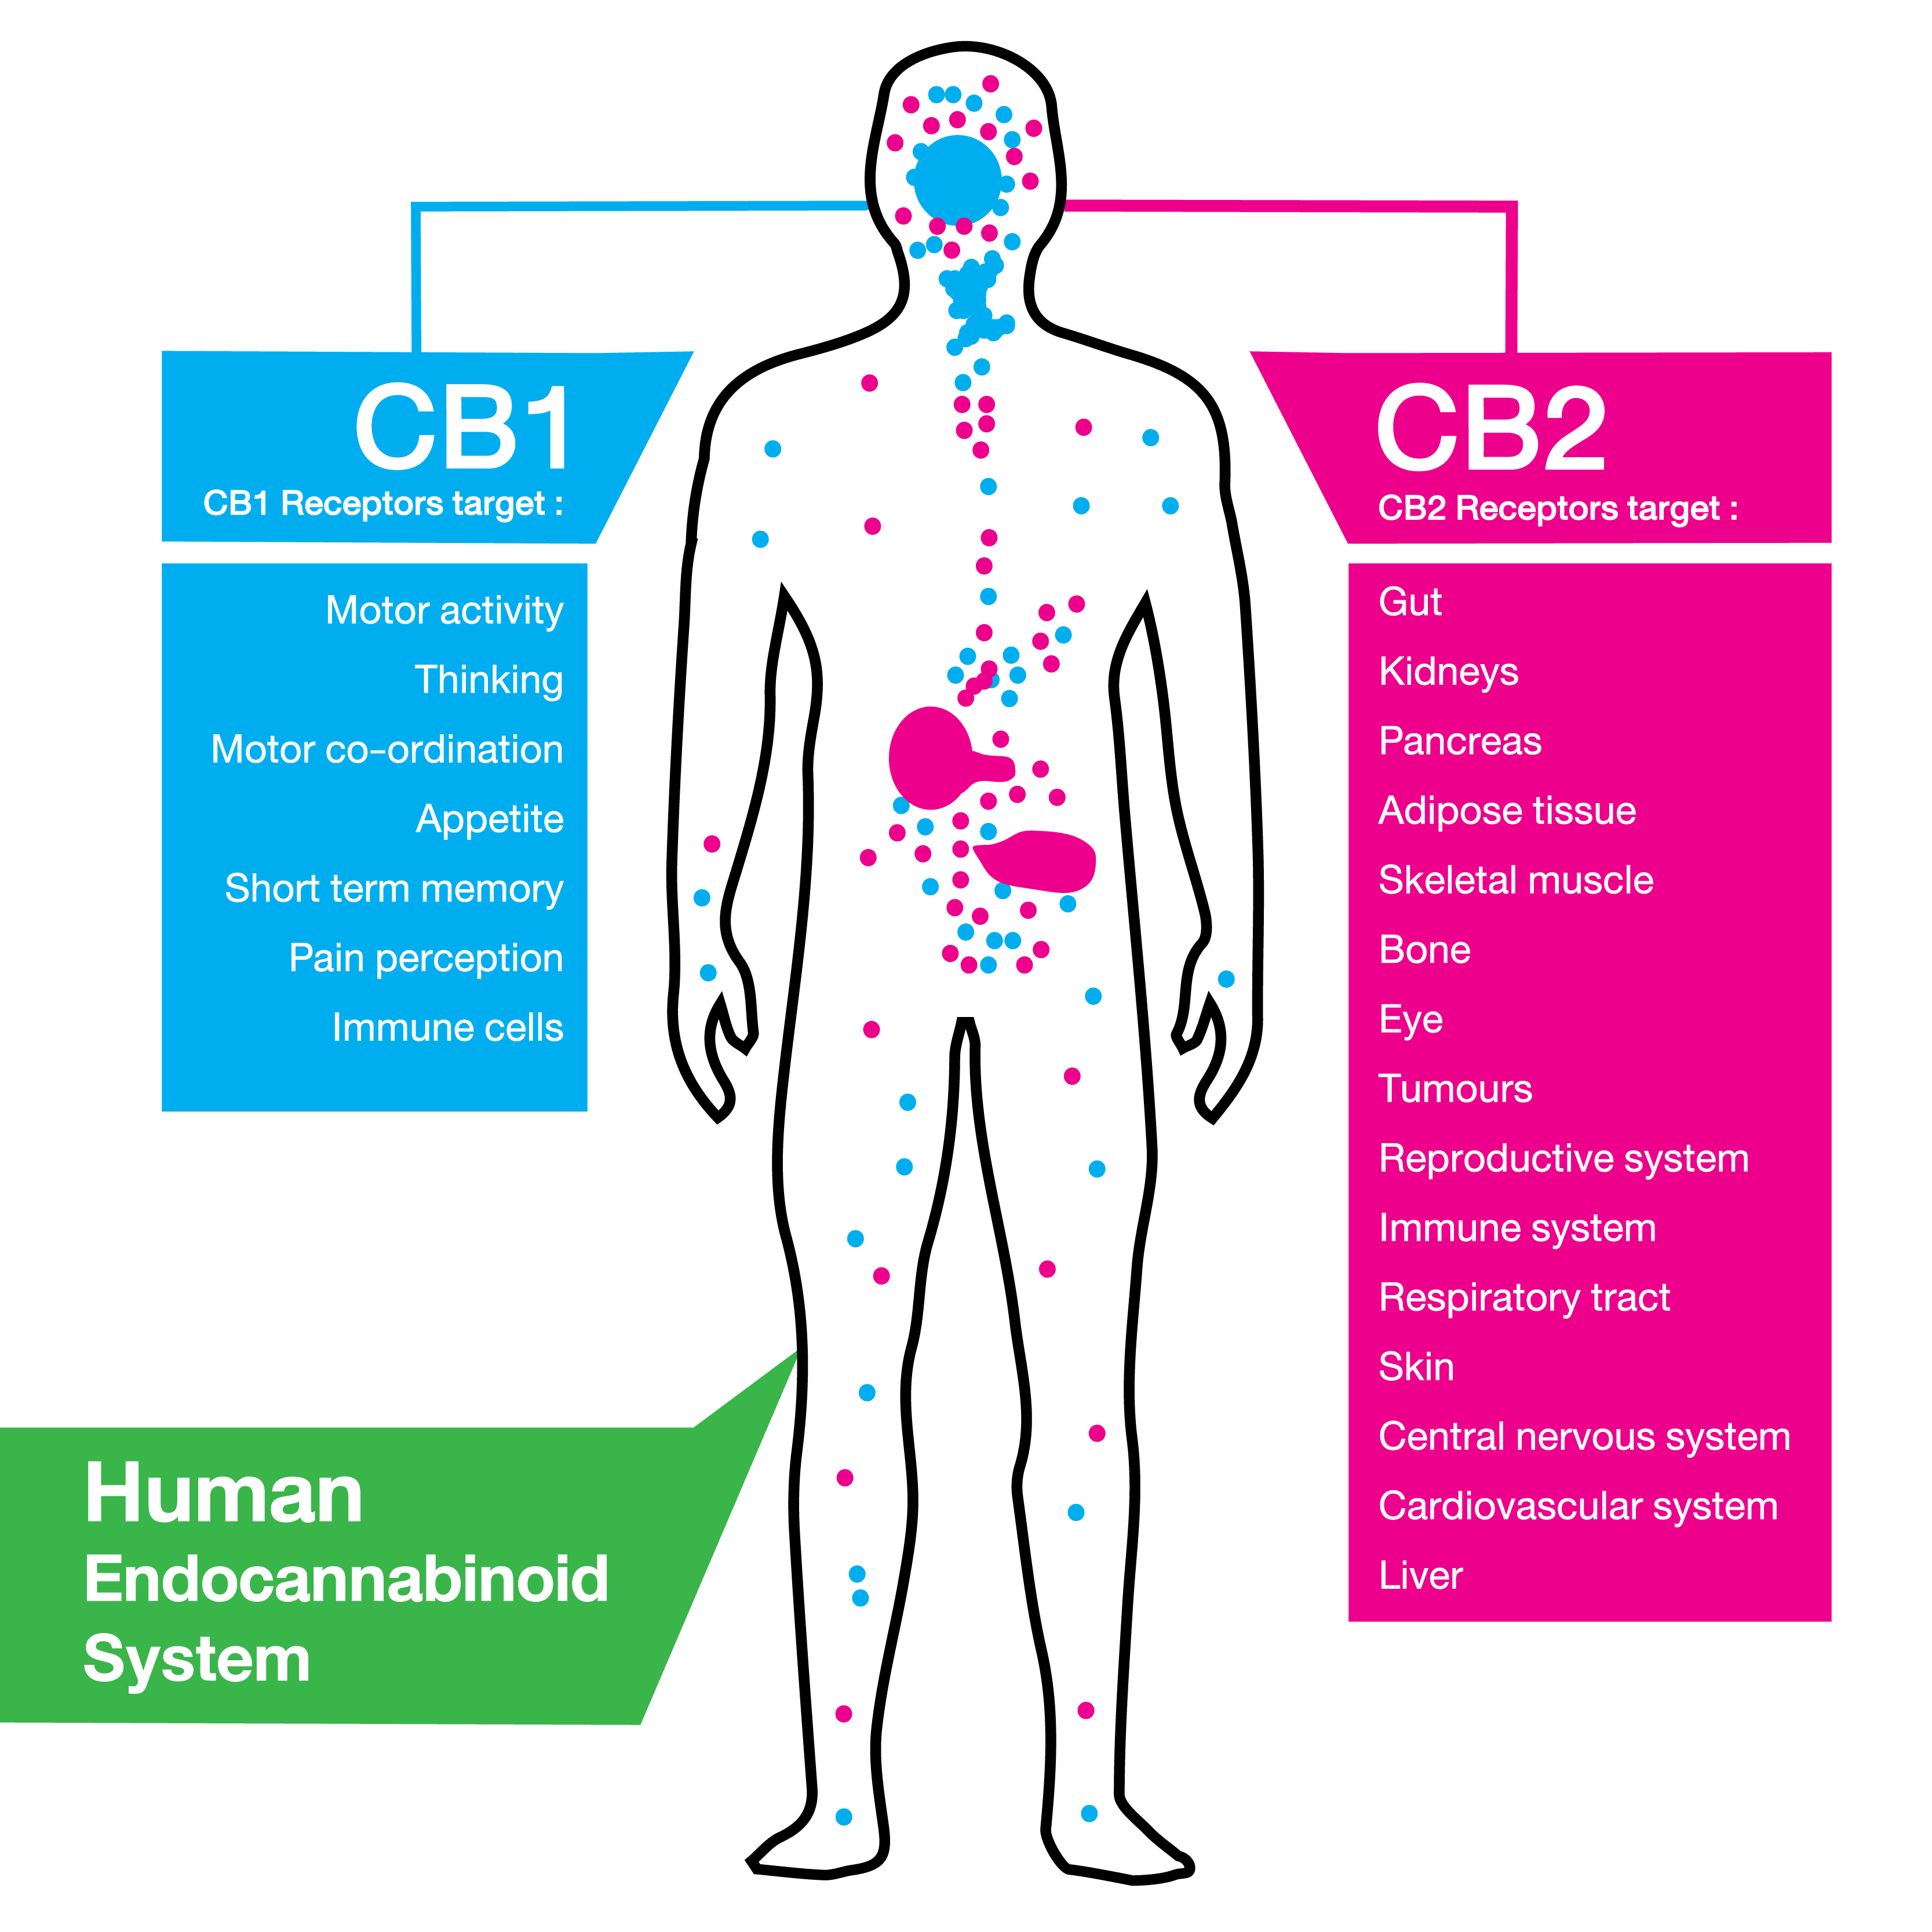 Cannabidiol does not actually bind with CB1 or CB2 receptors in the human endocannabinoid system.